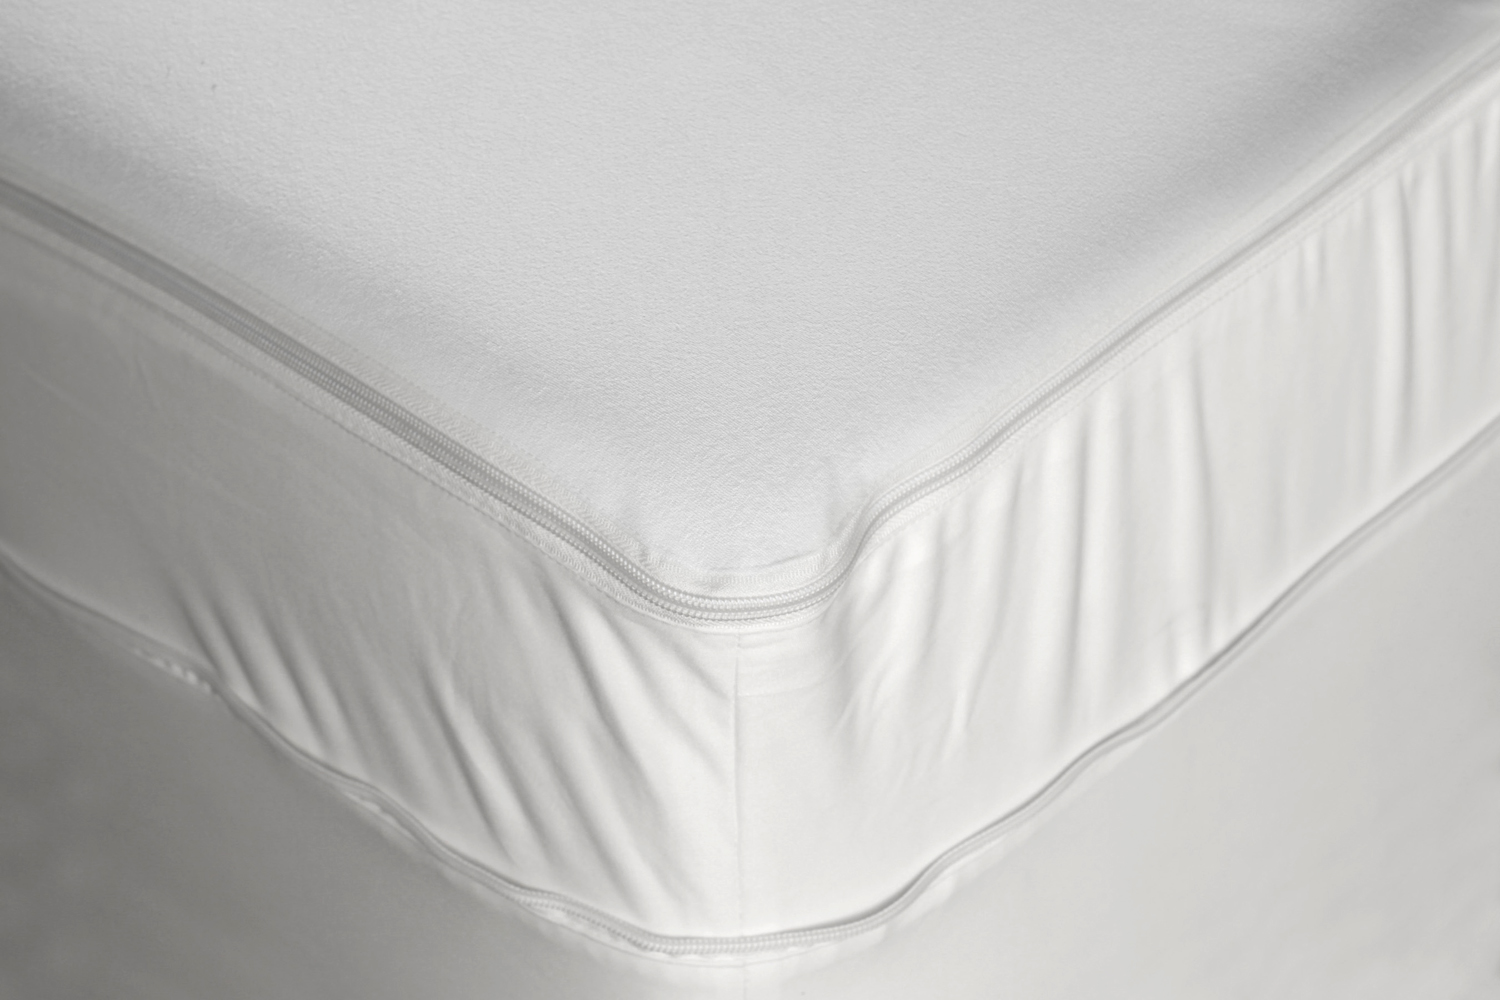 Bed Bugs Mattress Cover Invisicase Easyzip Mattress Protector